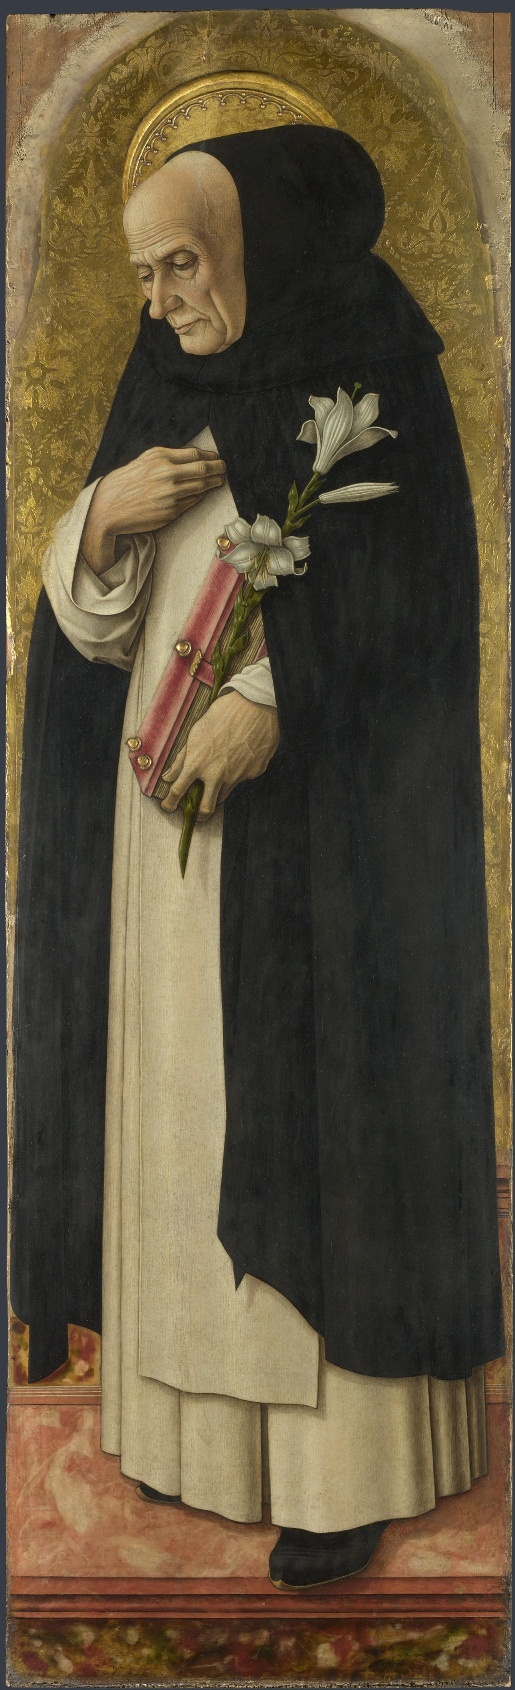 ❤ - CARLO CRIVELLI (1435 – 1495) - Polyptych of San Domenico. Saint Dominic (detail). National Gallery, London.